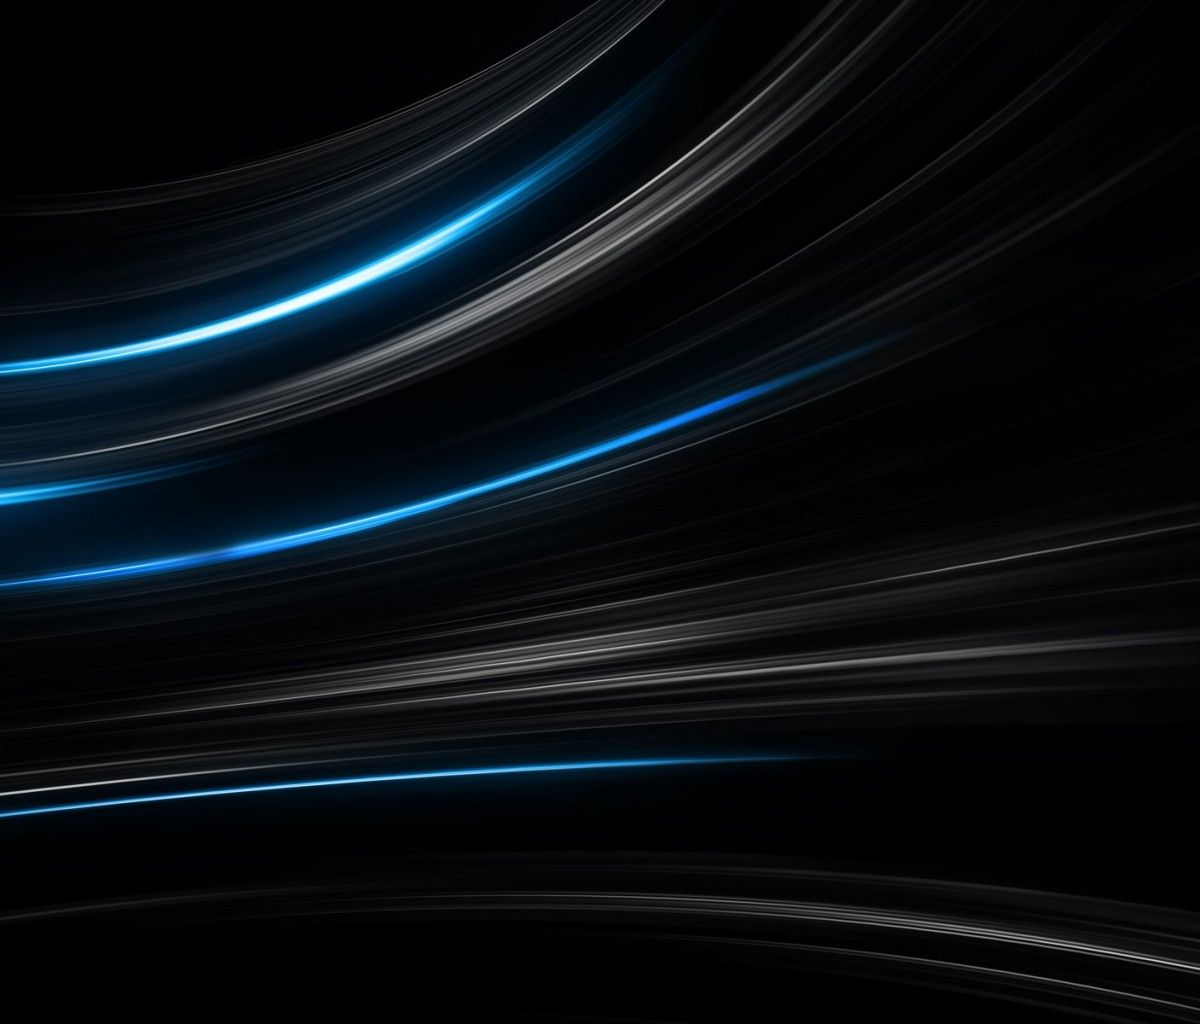 Dark Theme Android Wallpapers - Wallpaper Cave